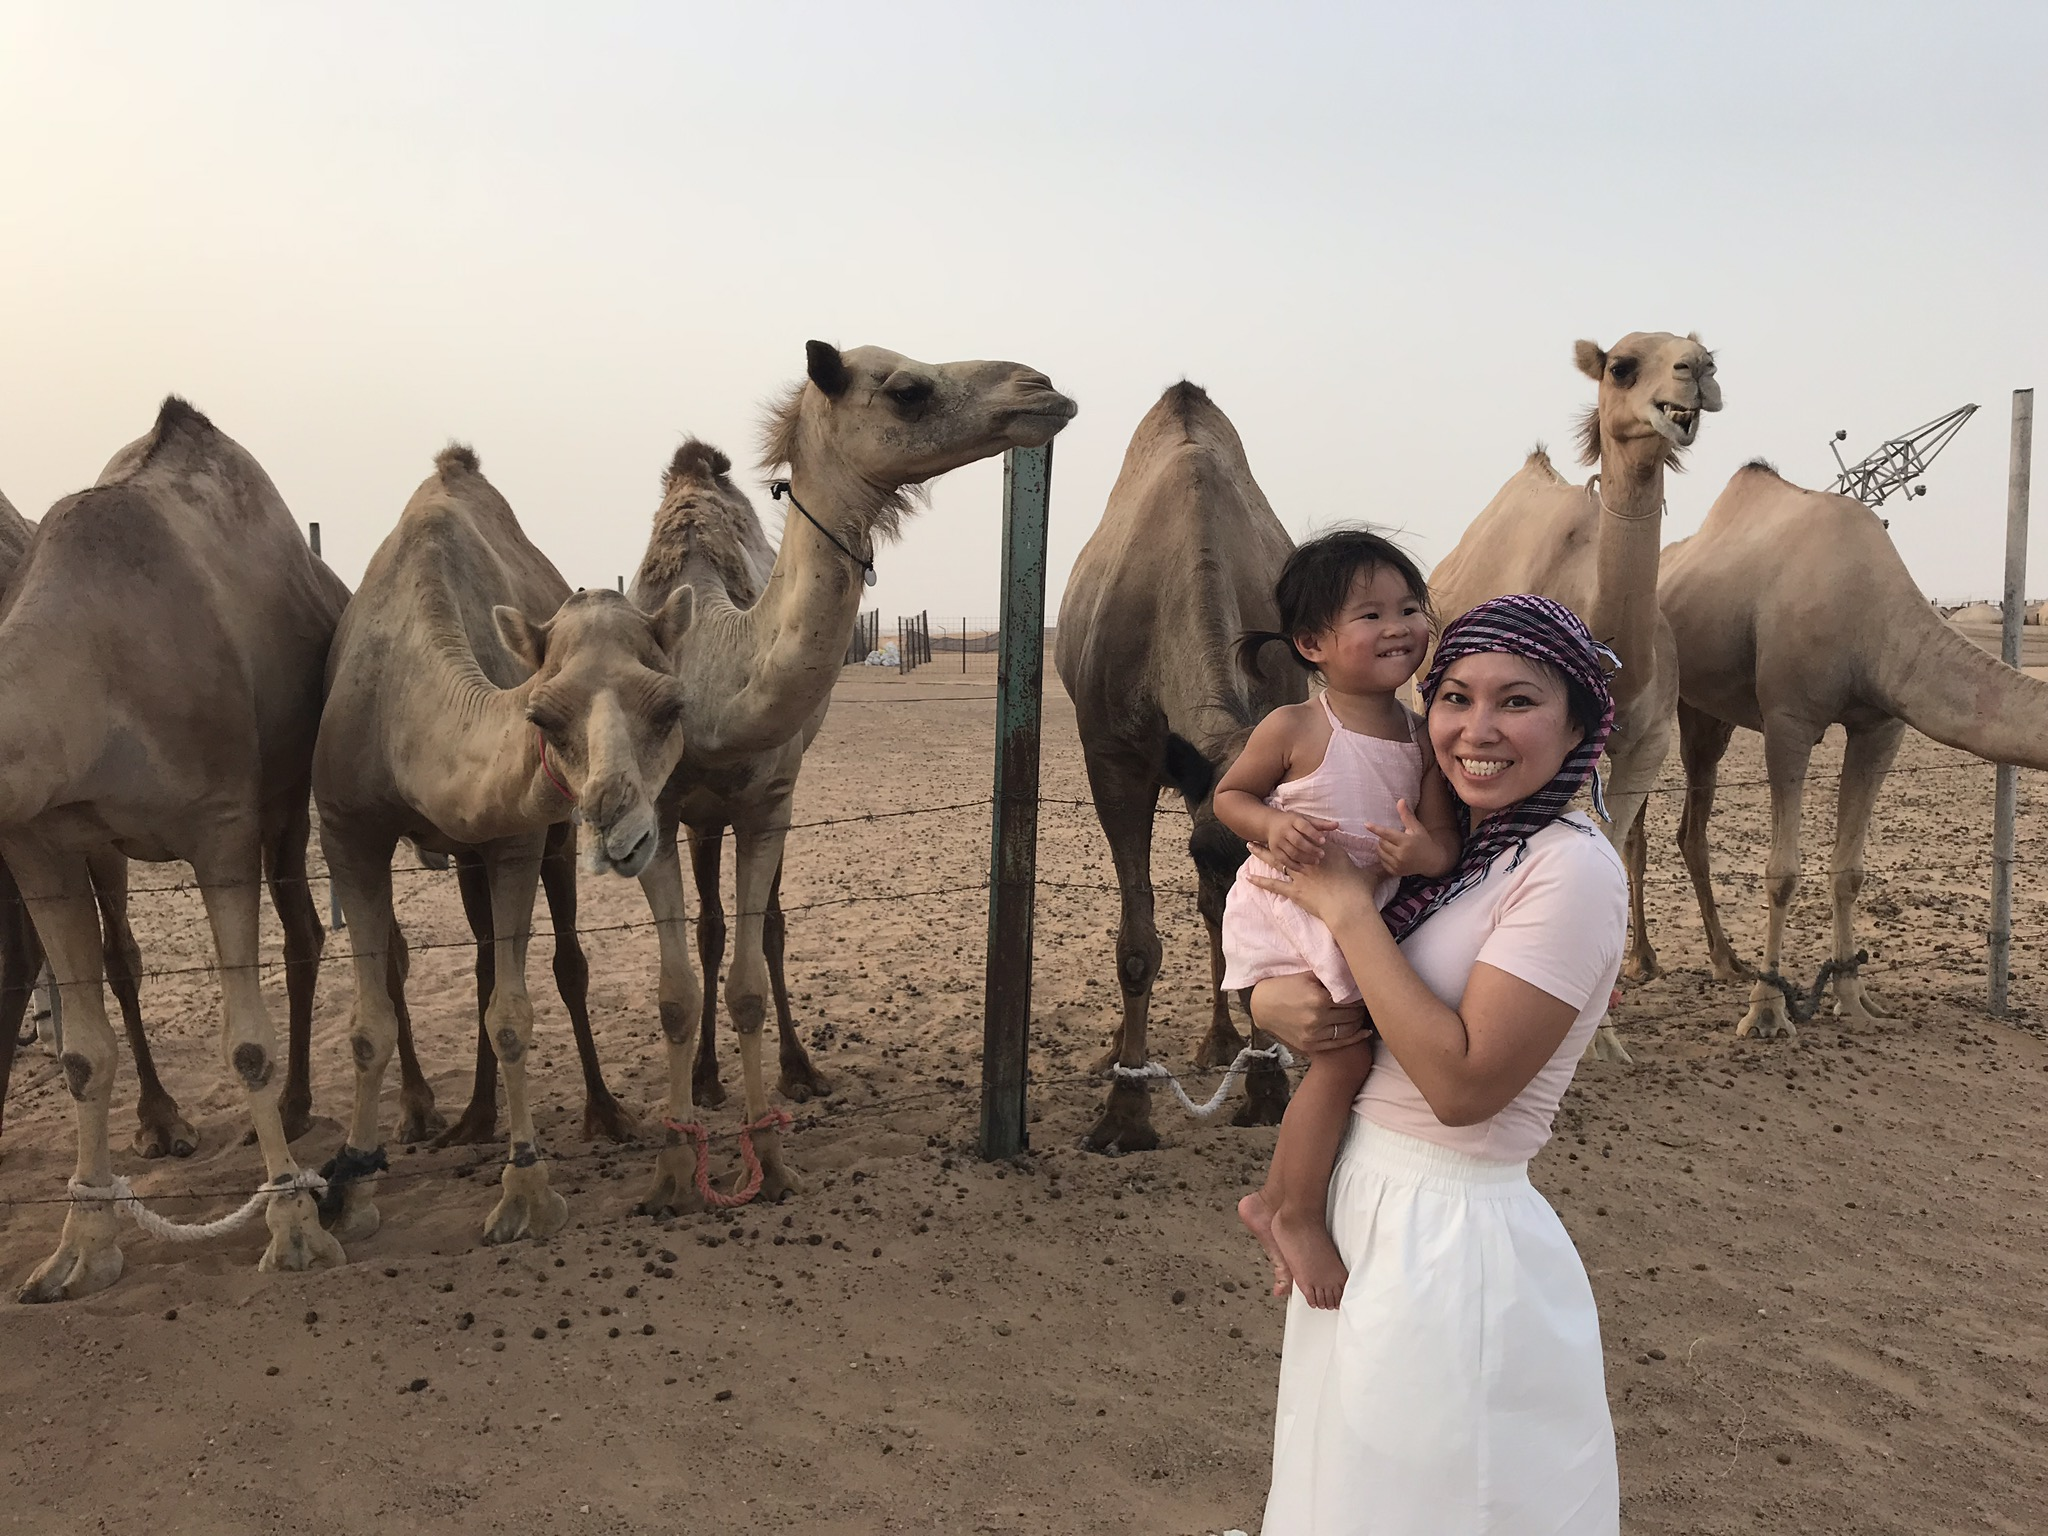 Just feeding some camels with Mom!